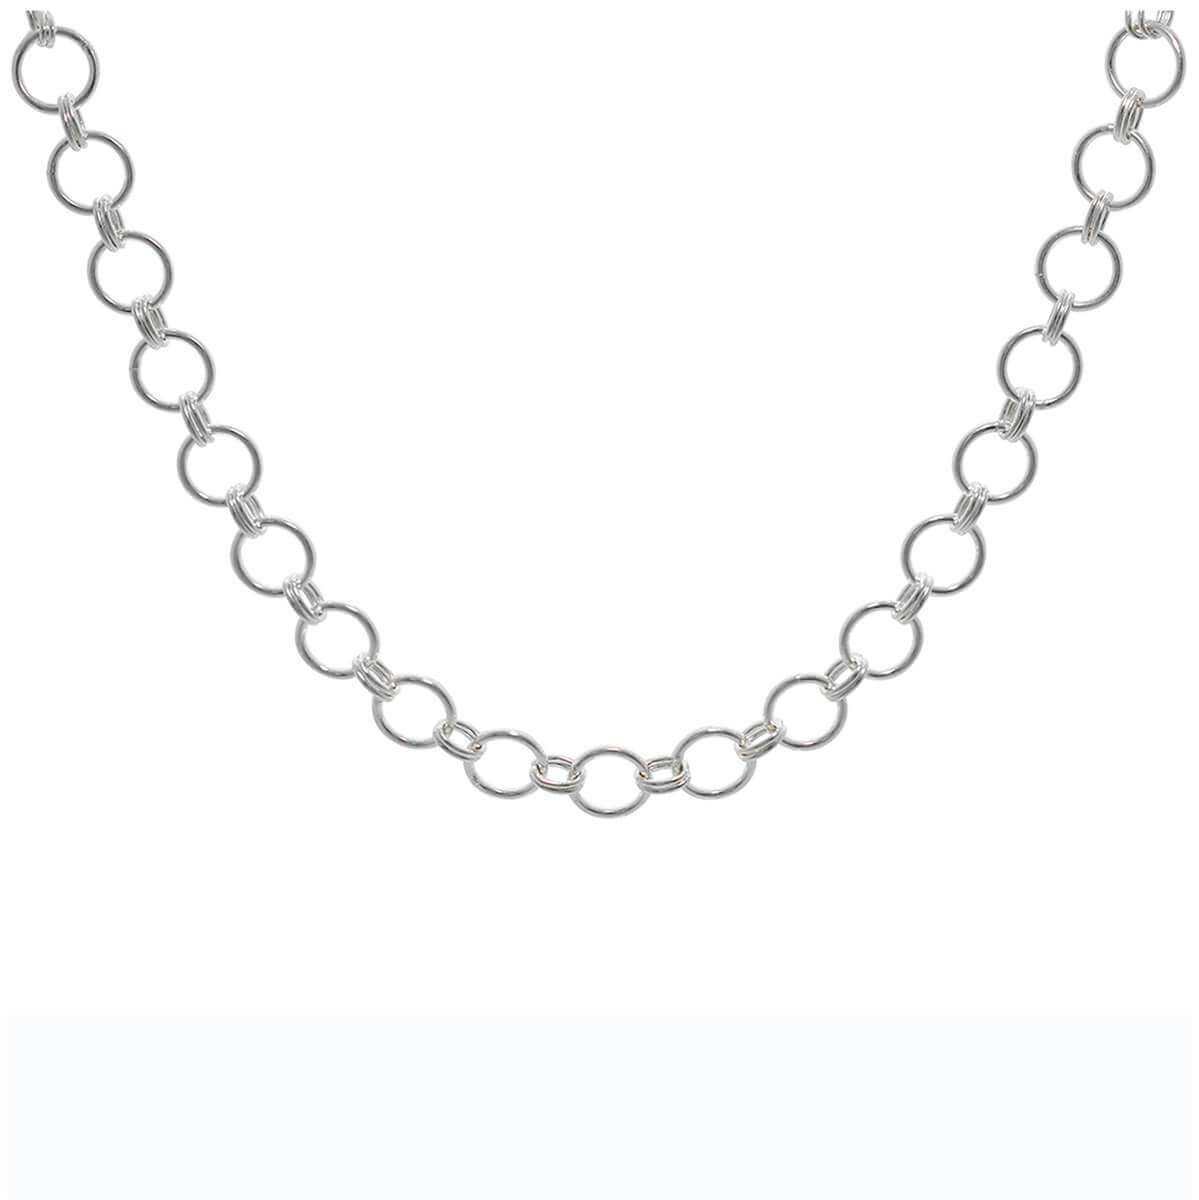 Sterling Silver Round Link Chain Adjustable Necklace 16-18 Inches